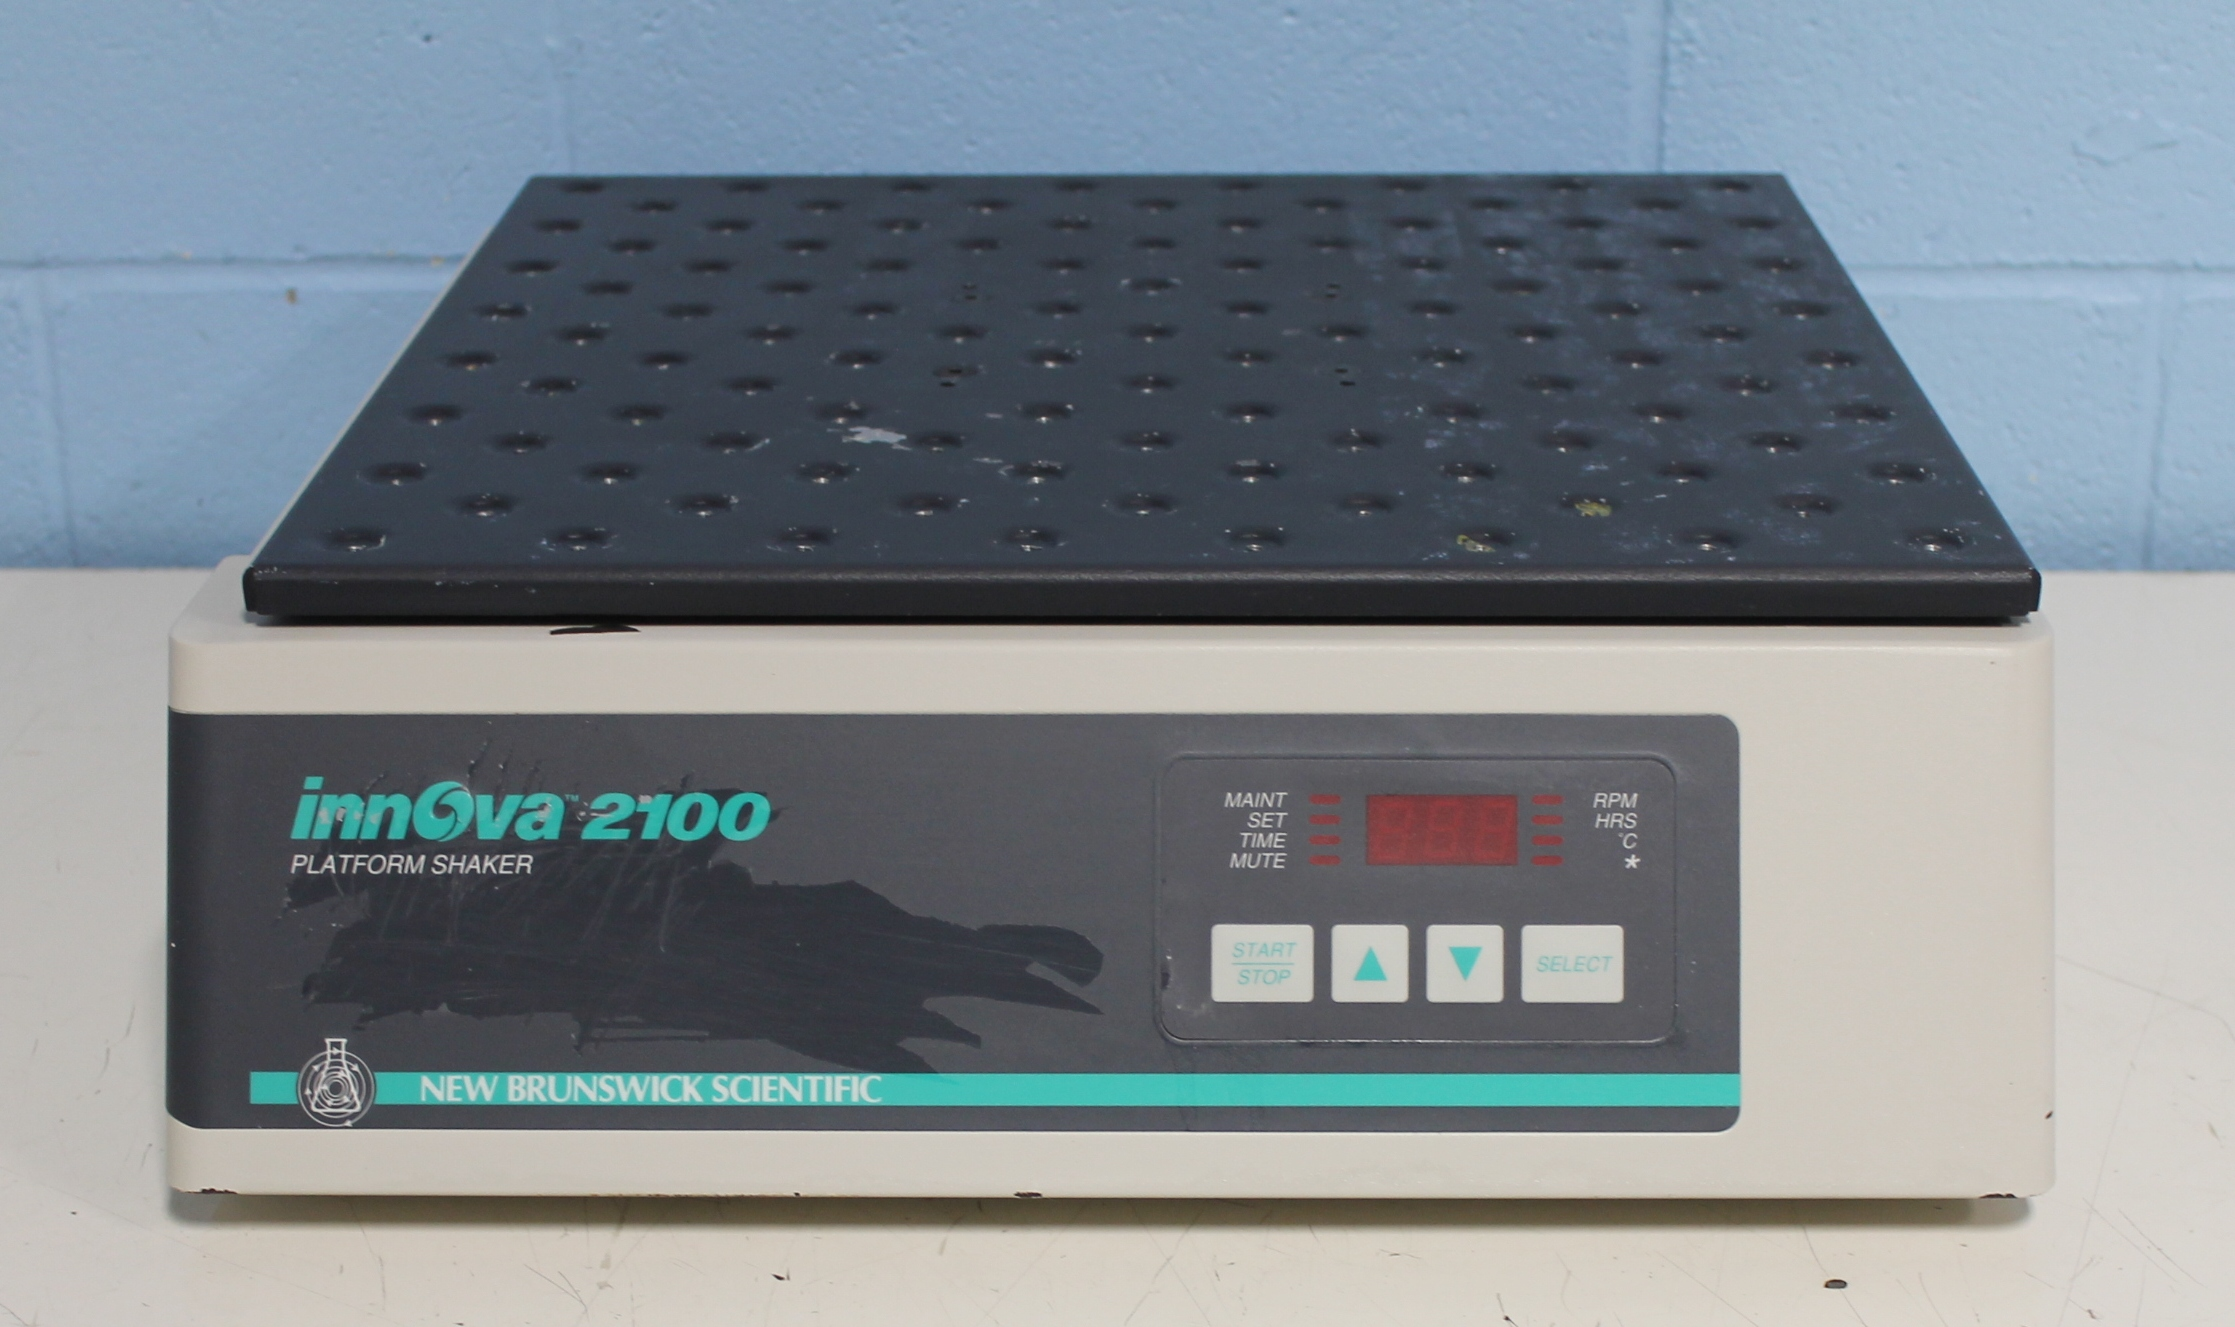 New Brunswick Scientific Co Innova 2100 Platform Shaker Image